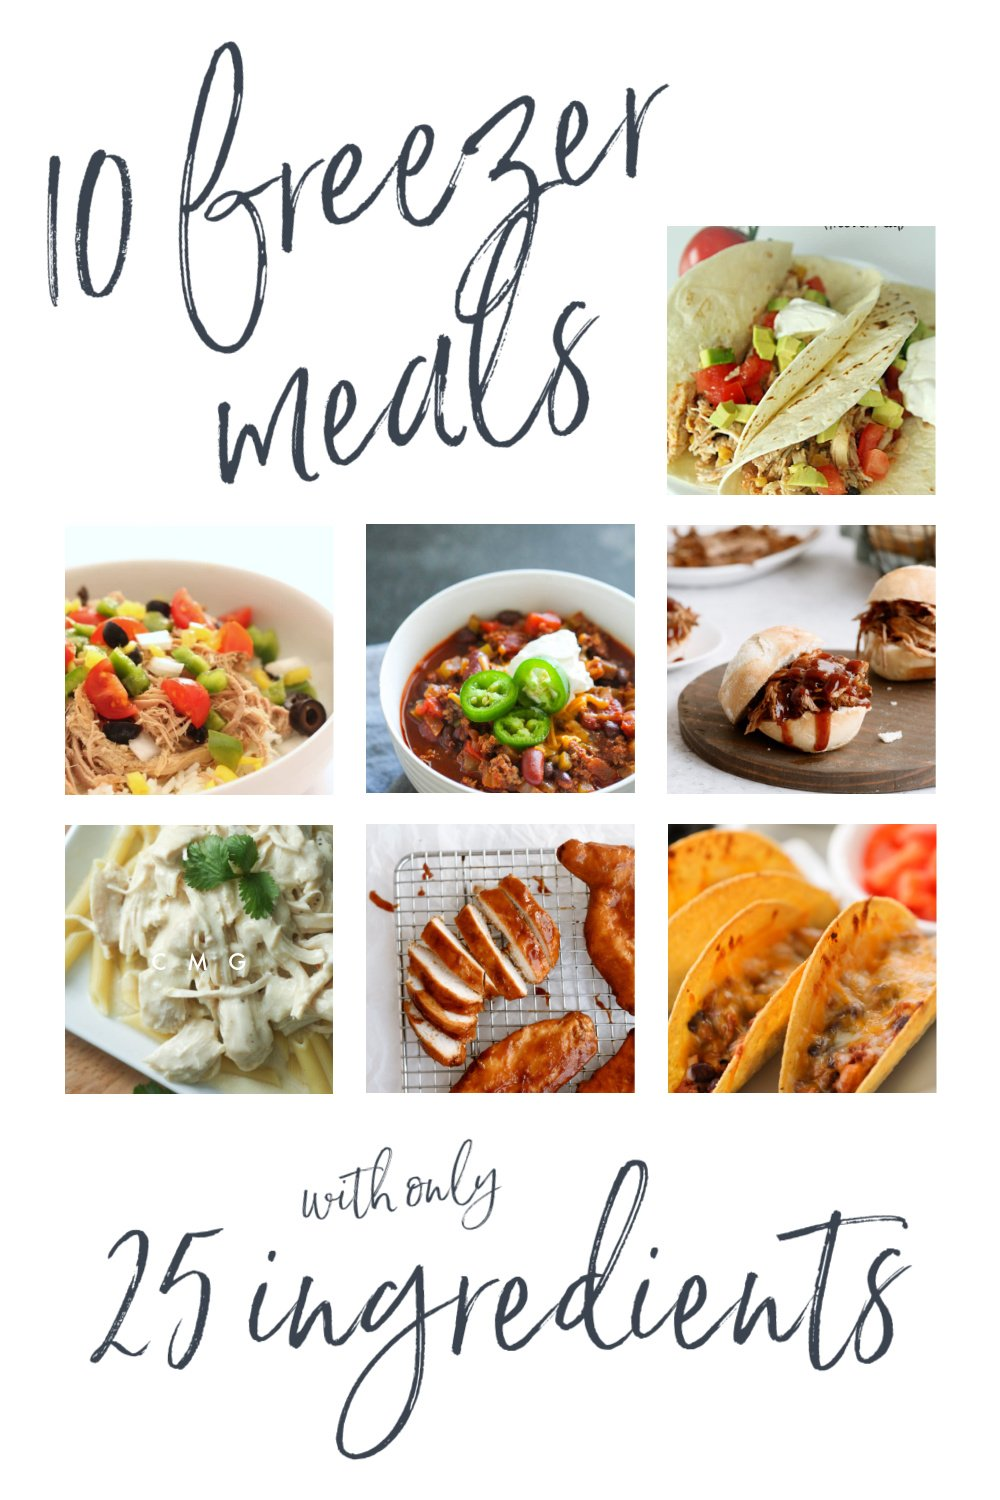 10 Simple Freezer Meals with only 25 Ingredients